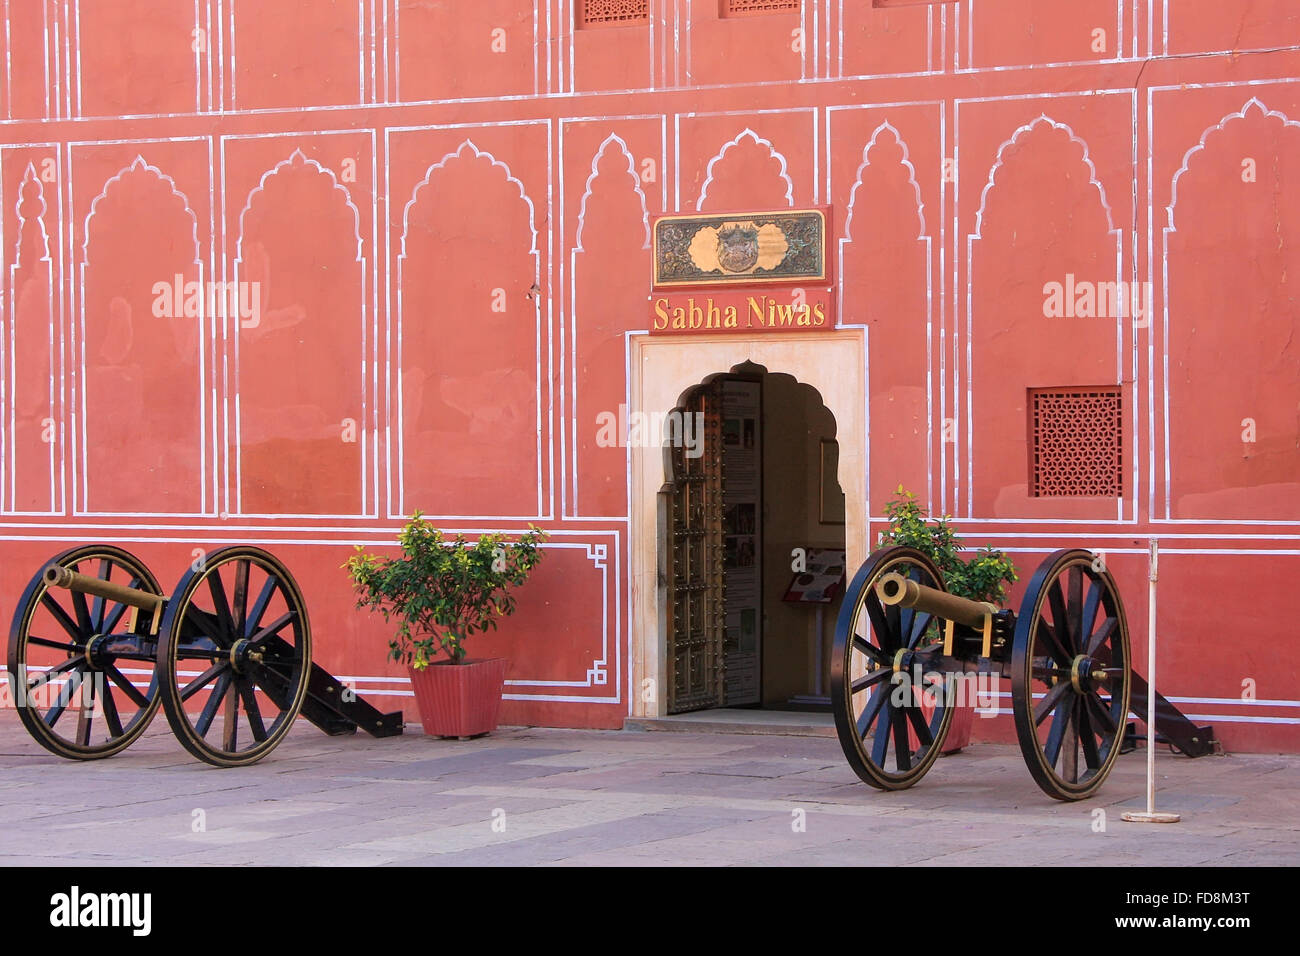 Cannons on display at Chandra Mahal in Jaipur City Palace, Rajasthan, India. Palace was the seat of the Maharaja - Stock Image